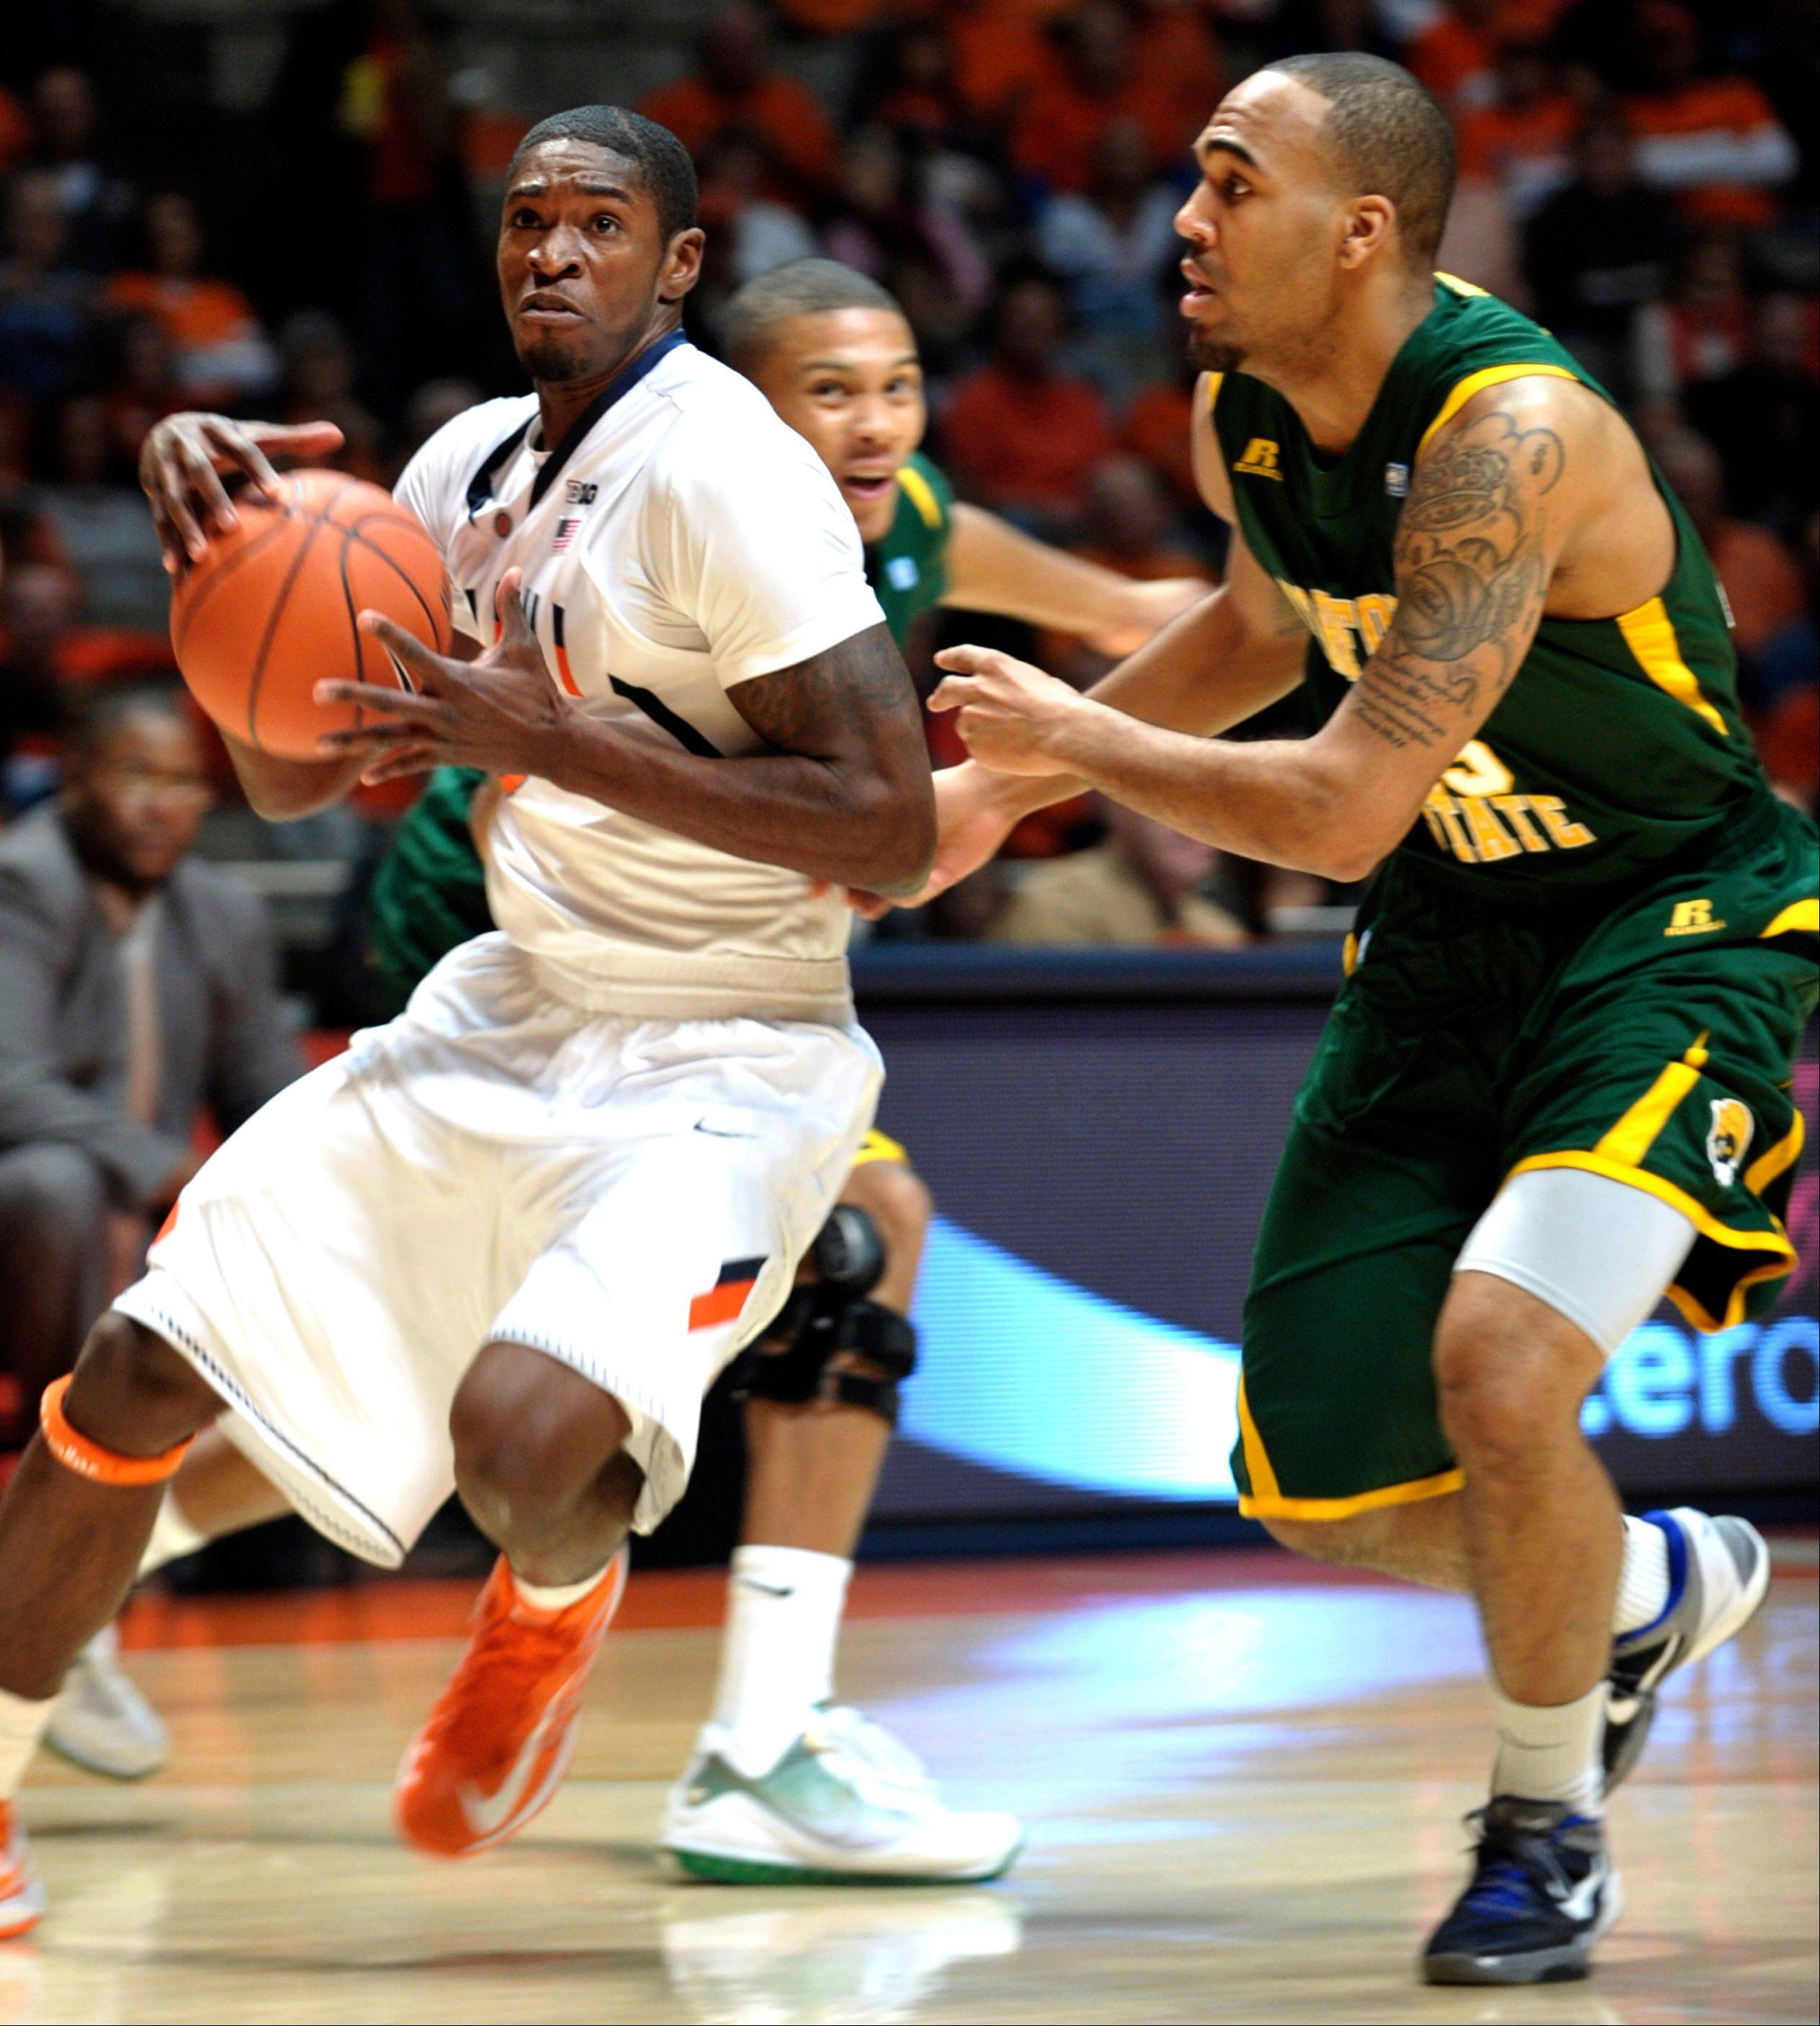 Illinois guard Brandon Paul drives around Norfolk State's Malcolm Hawkins Tuesday during the first half at Assembly Hall in Champaign.